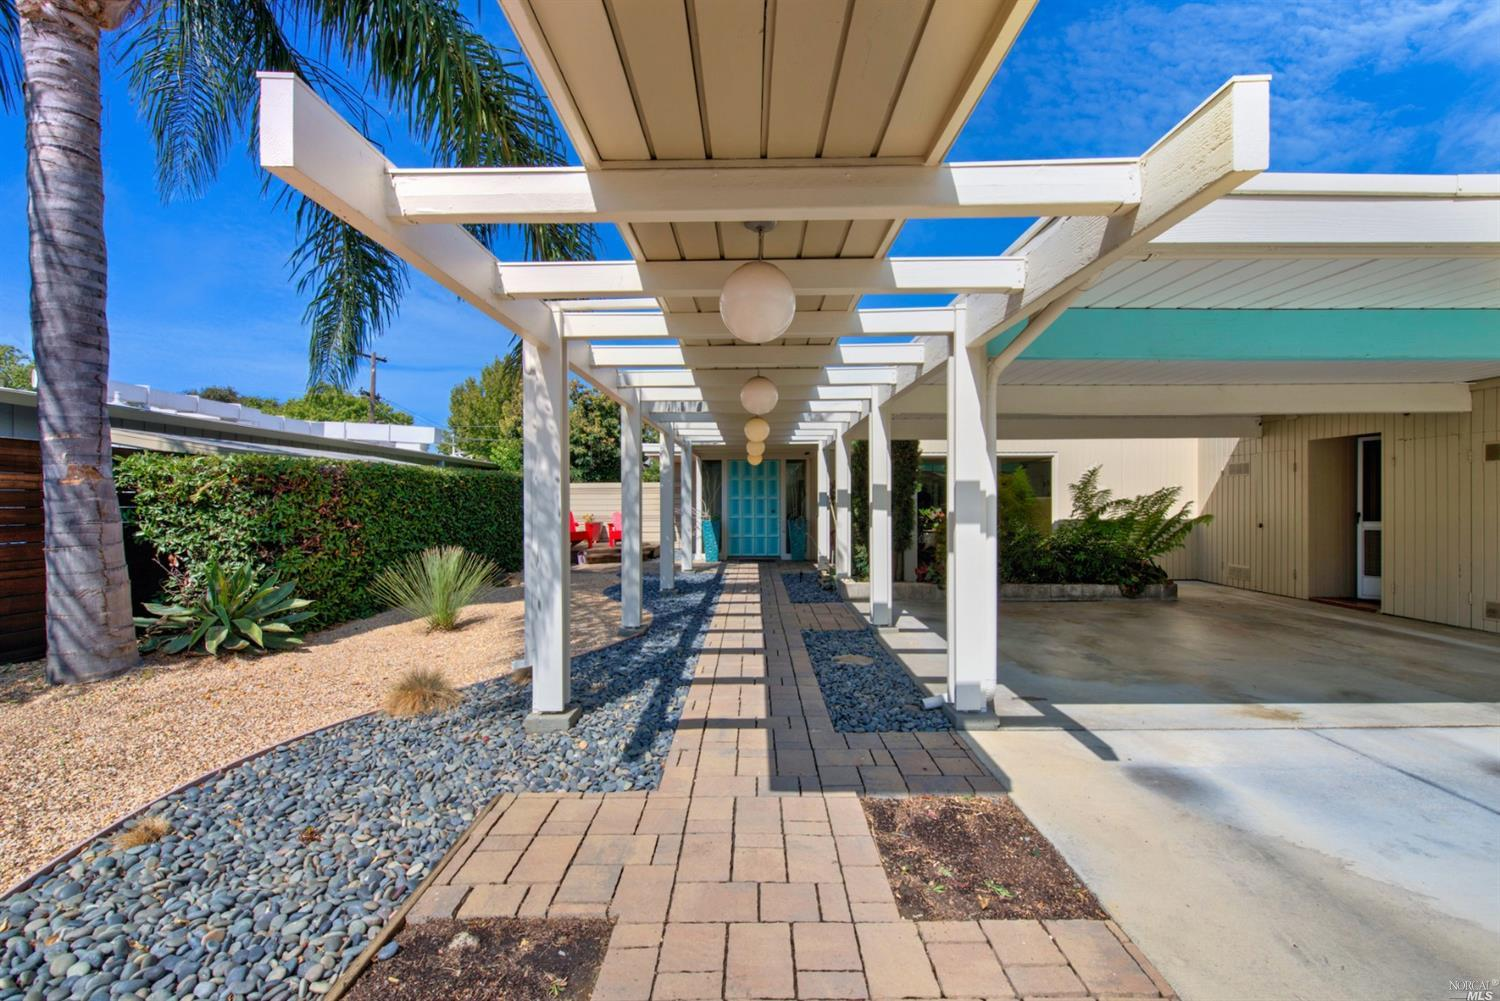 Get ready to be inspired by this incredible Eichler-style home. Think Mid-Century Modern meets Nut T